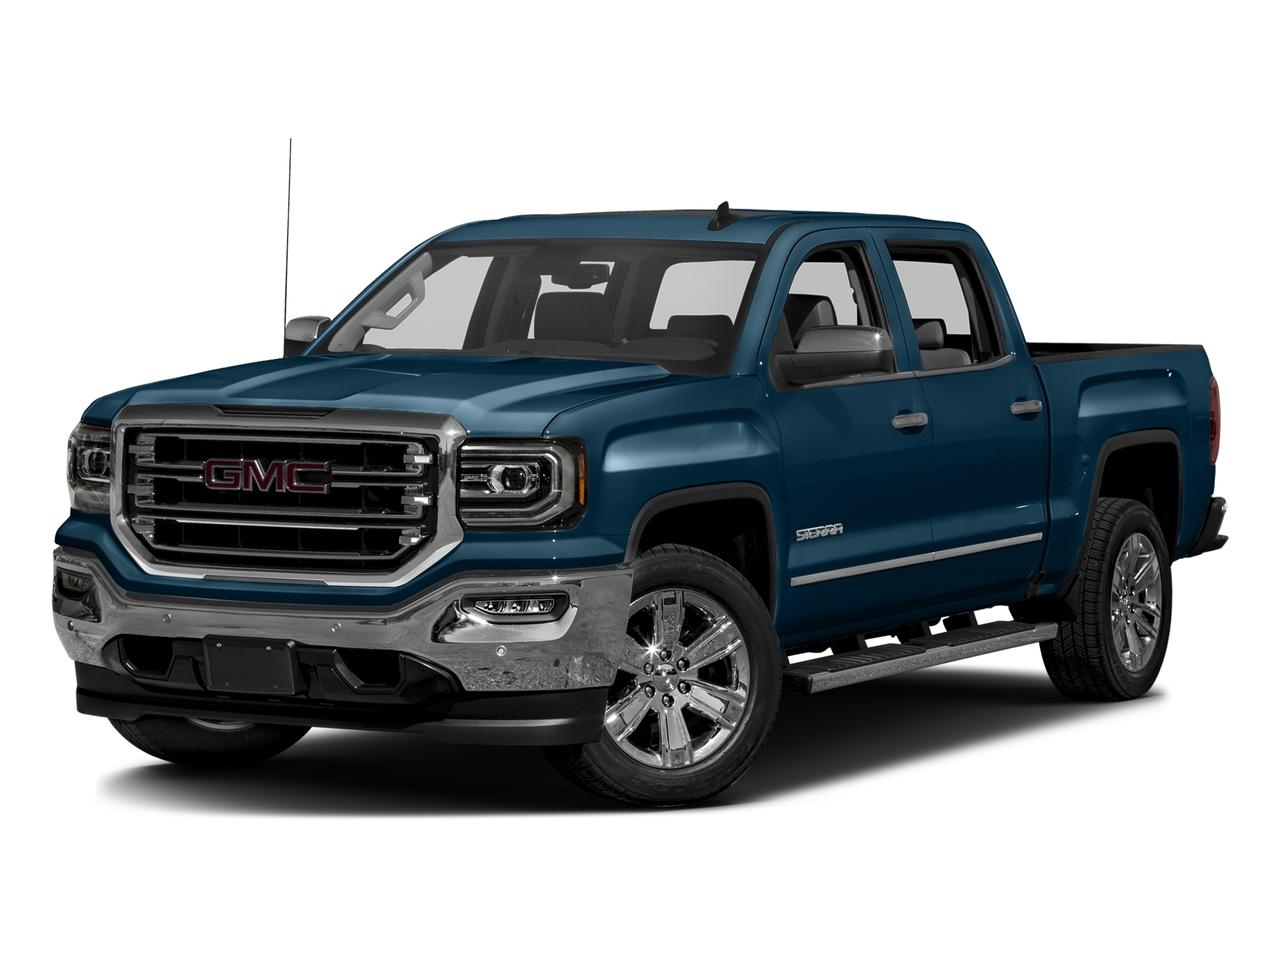 2018 GMC Sierra 1500 Vehicle Photo in King George, VA 22485